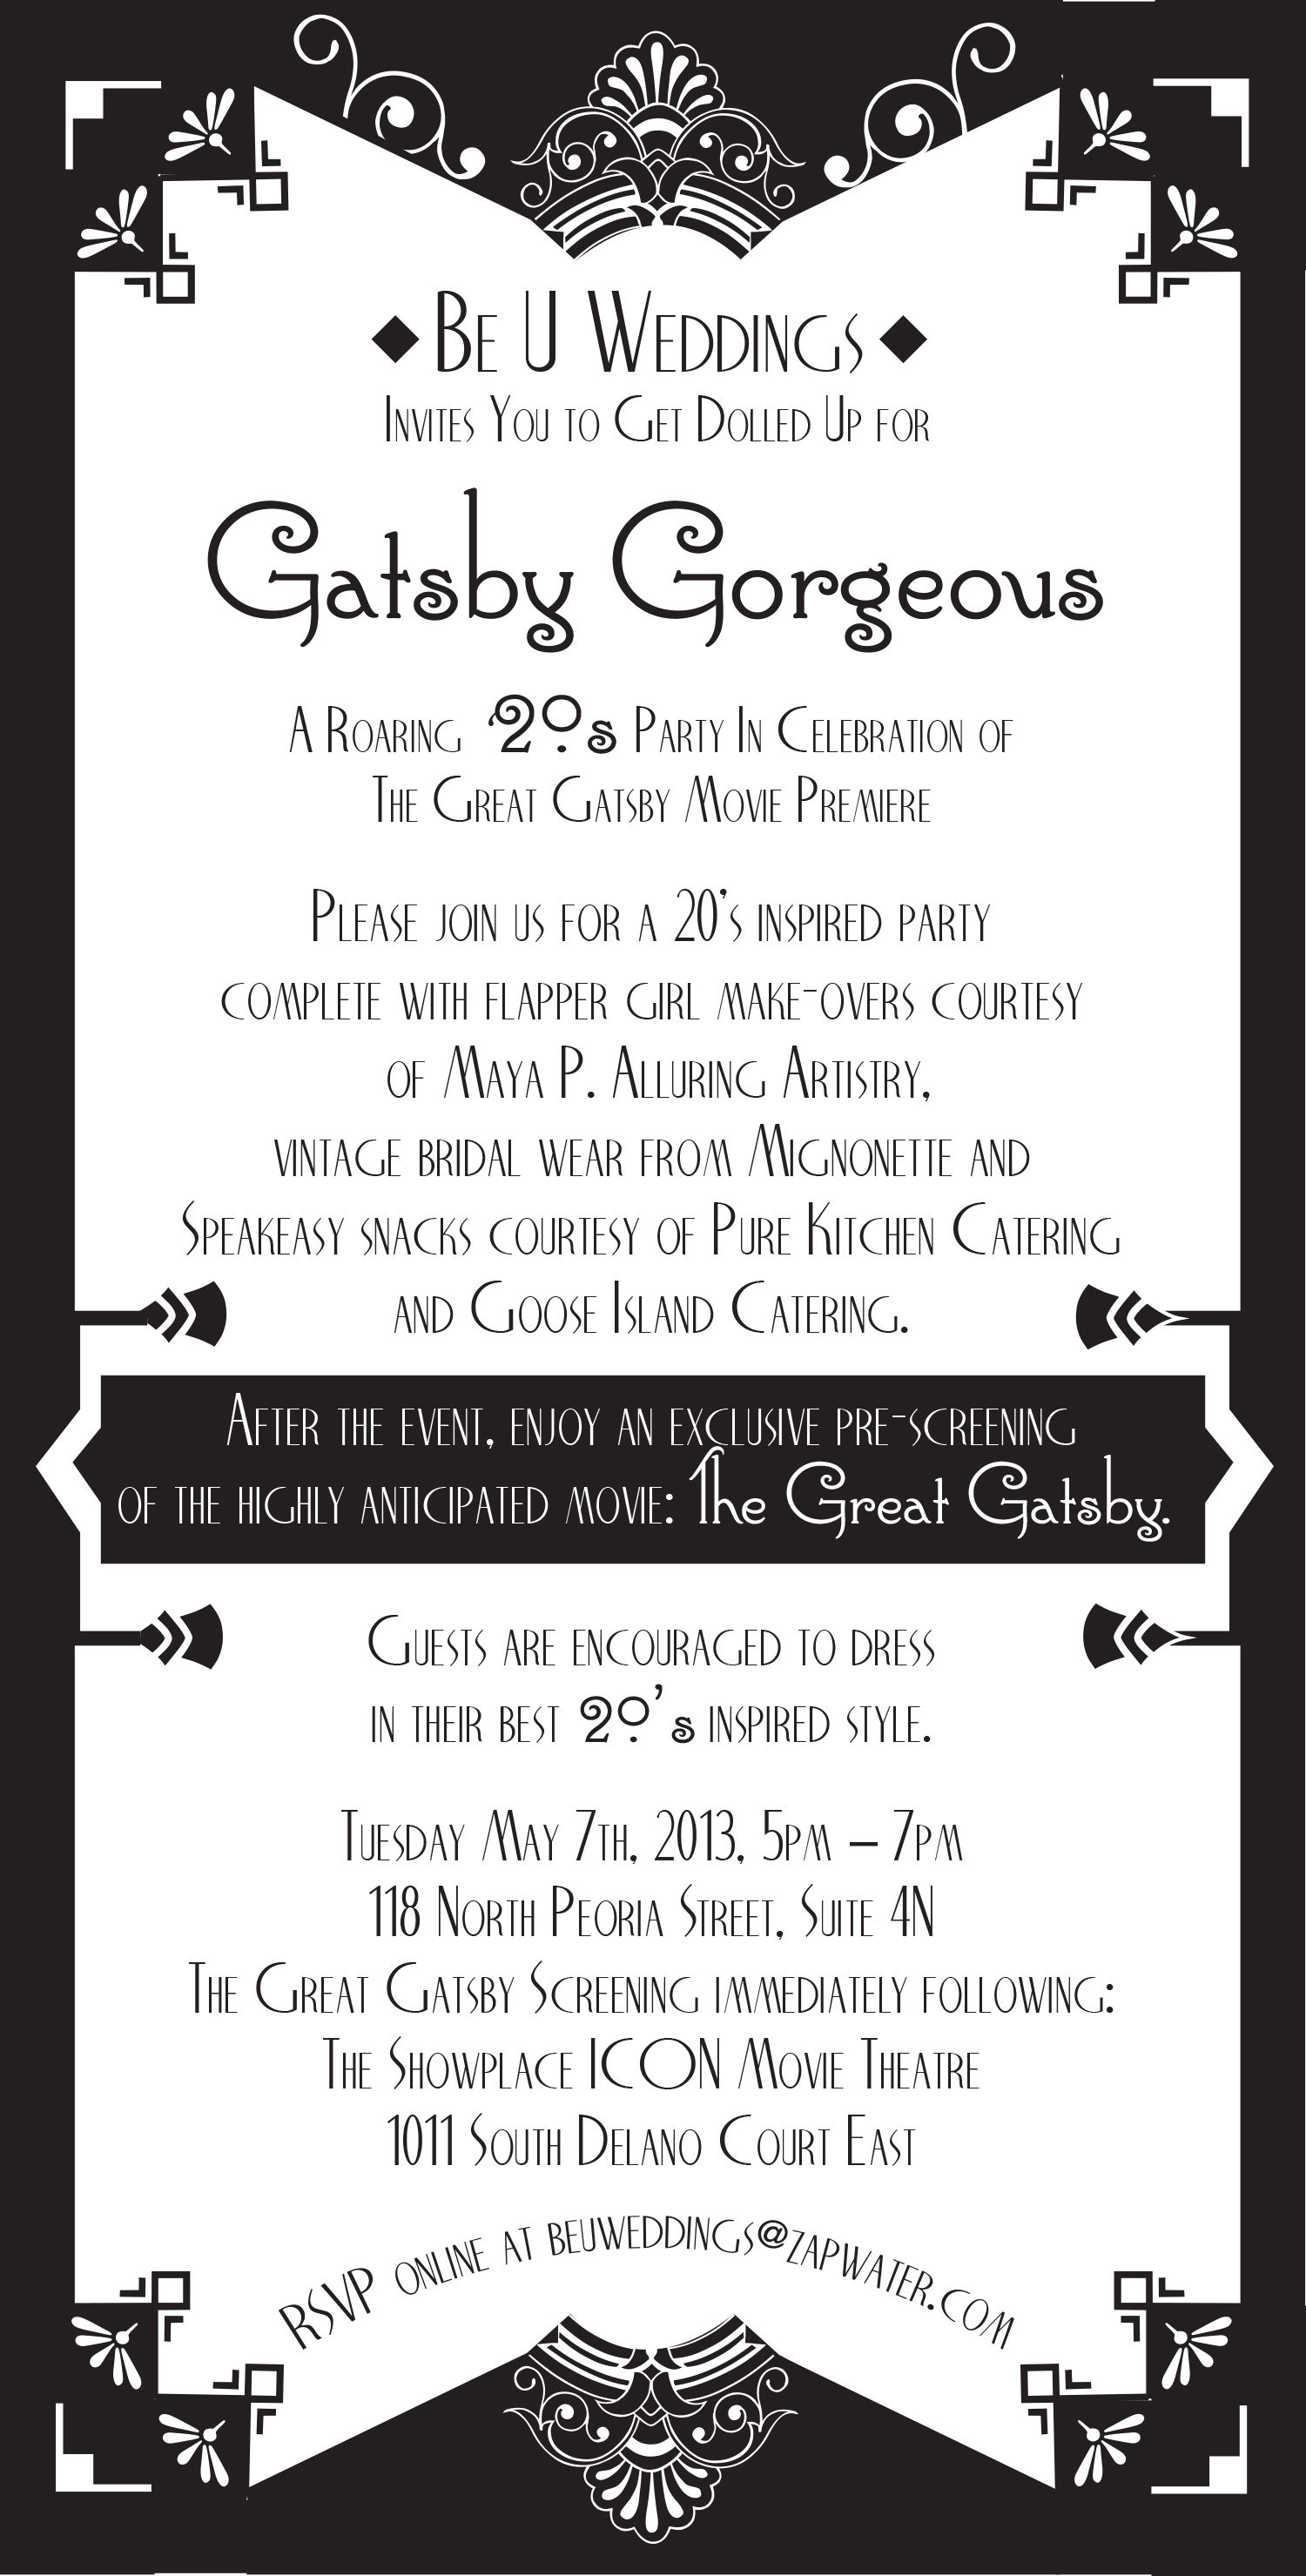 Gatsby themed party invitation party invitation wording gatsby themed party invitation party invitation wording samples also great gatsby party stopboris Image collections